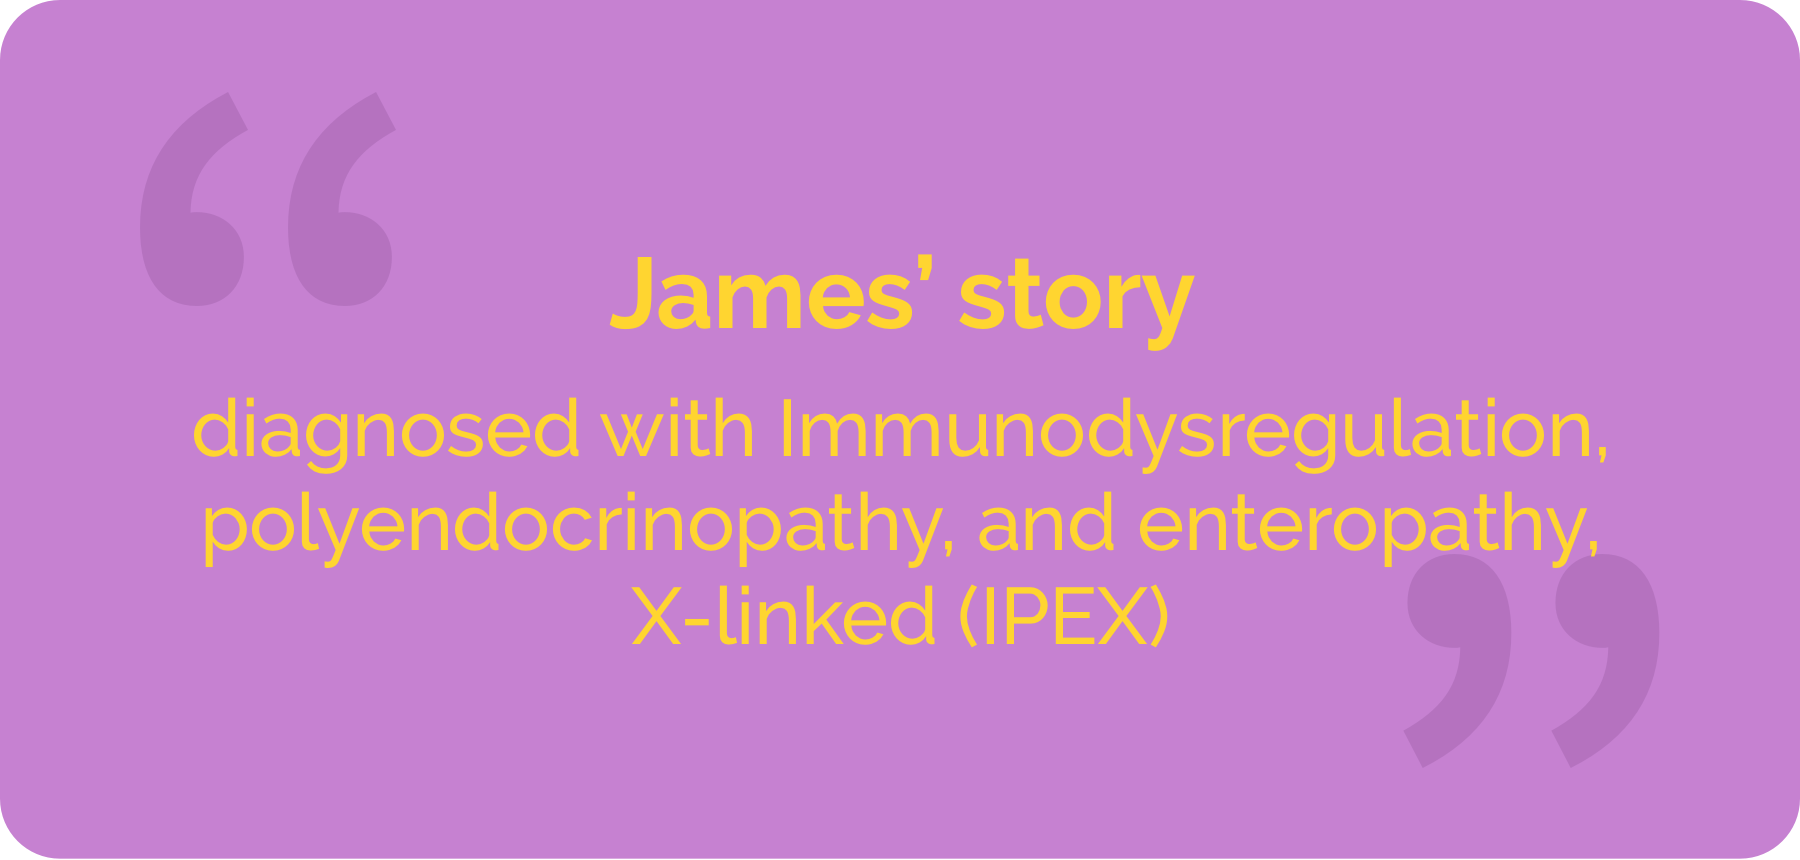 The cover of 'Story of a man diagnosed with Immunodysregulation, polyendocrinopathy, and enteropathy, X-linked (IPEX)'